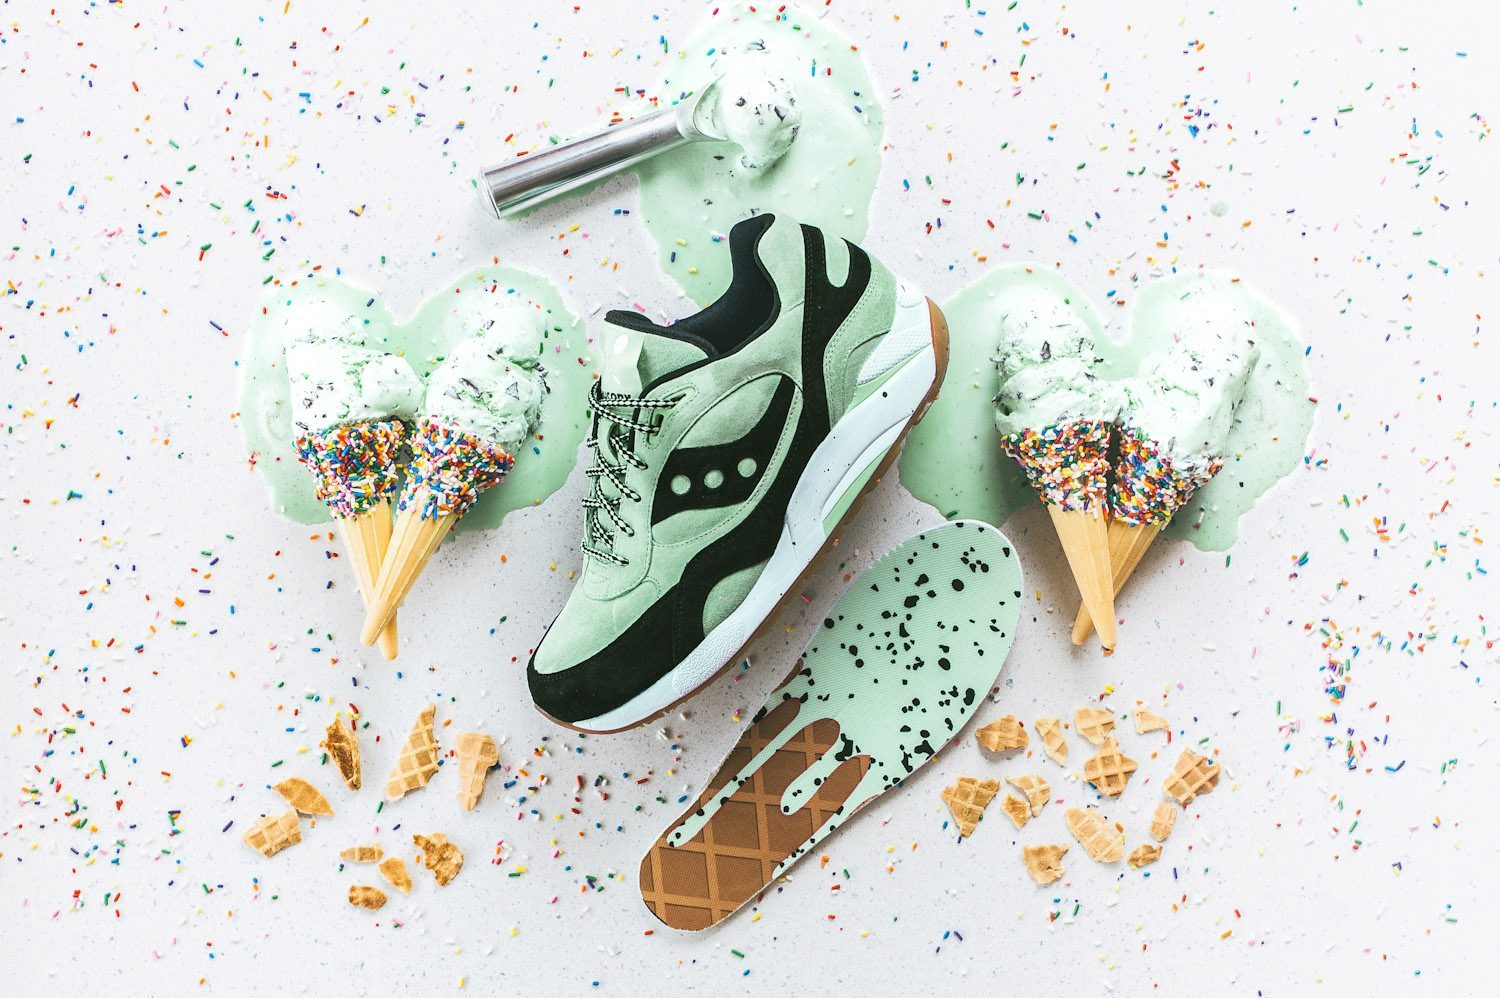 Saucony Originals G9 Shadow 6 Scoops Pack Mint Chocolate Chip